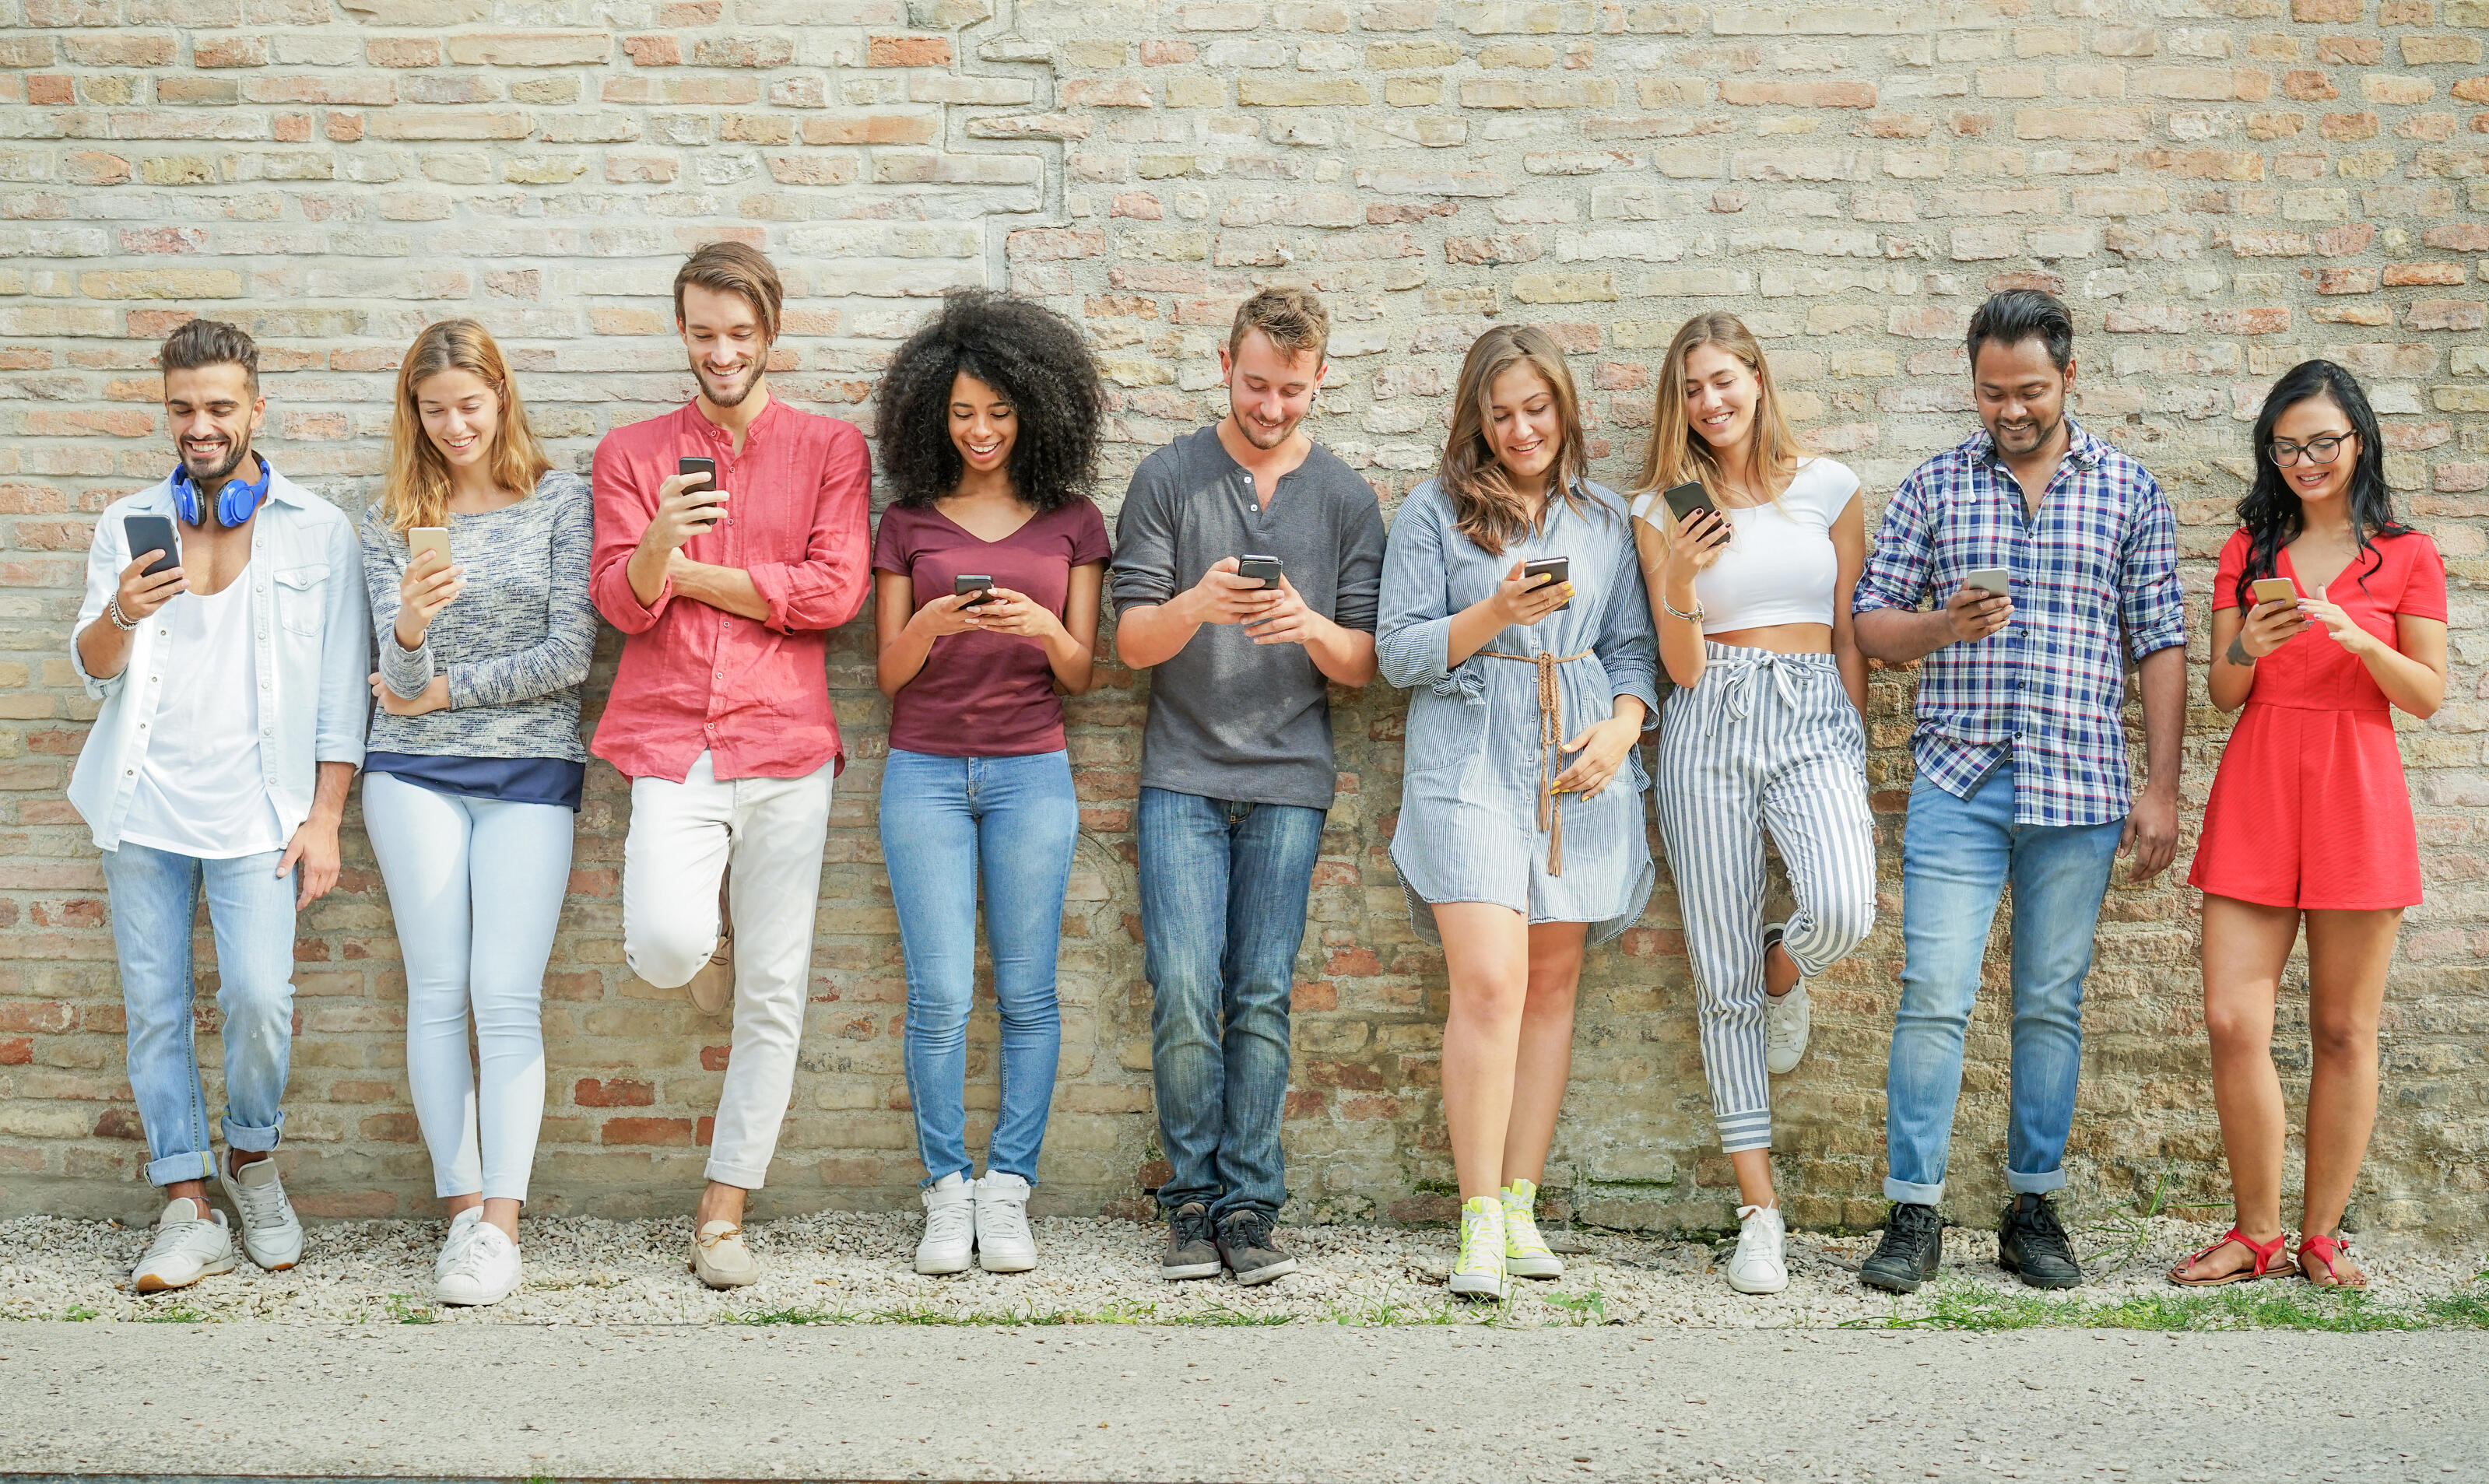 Diverse young people using smartphones outdoors